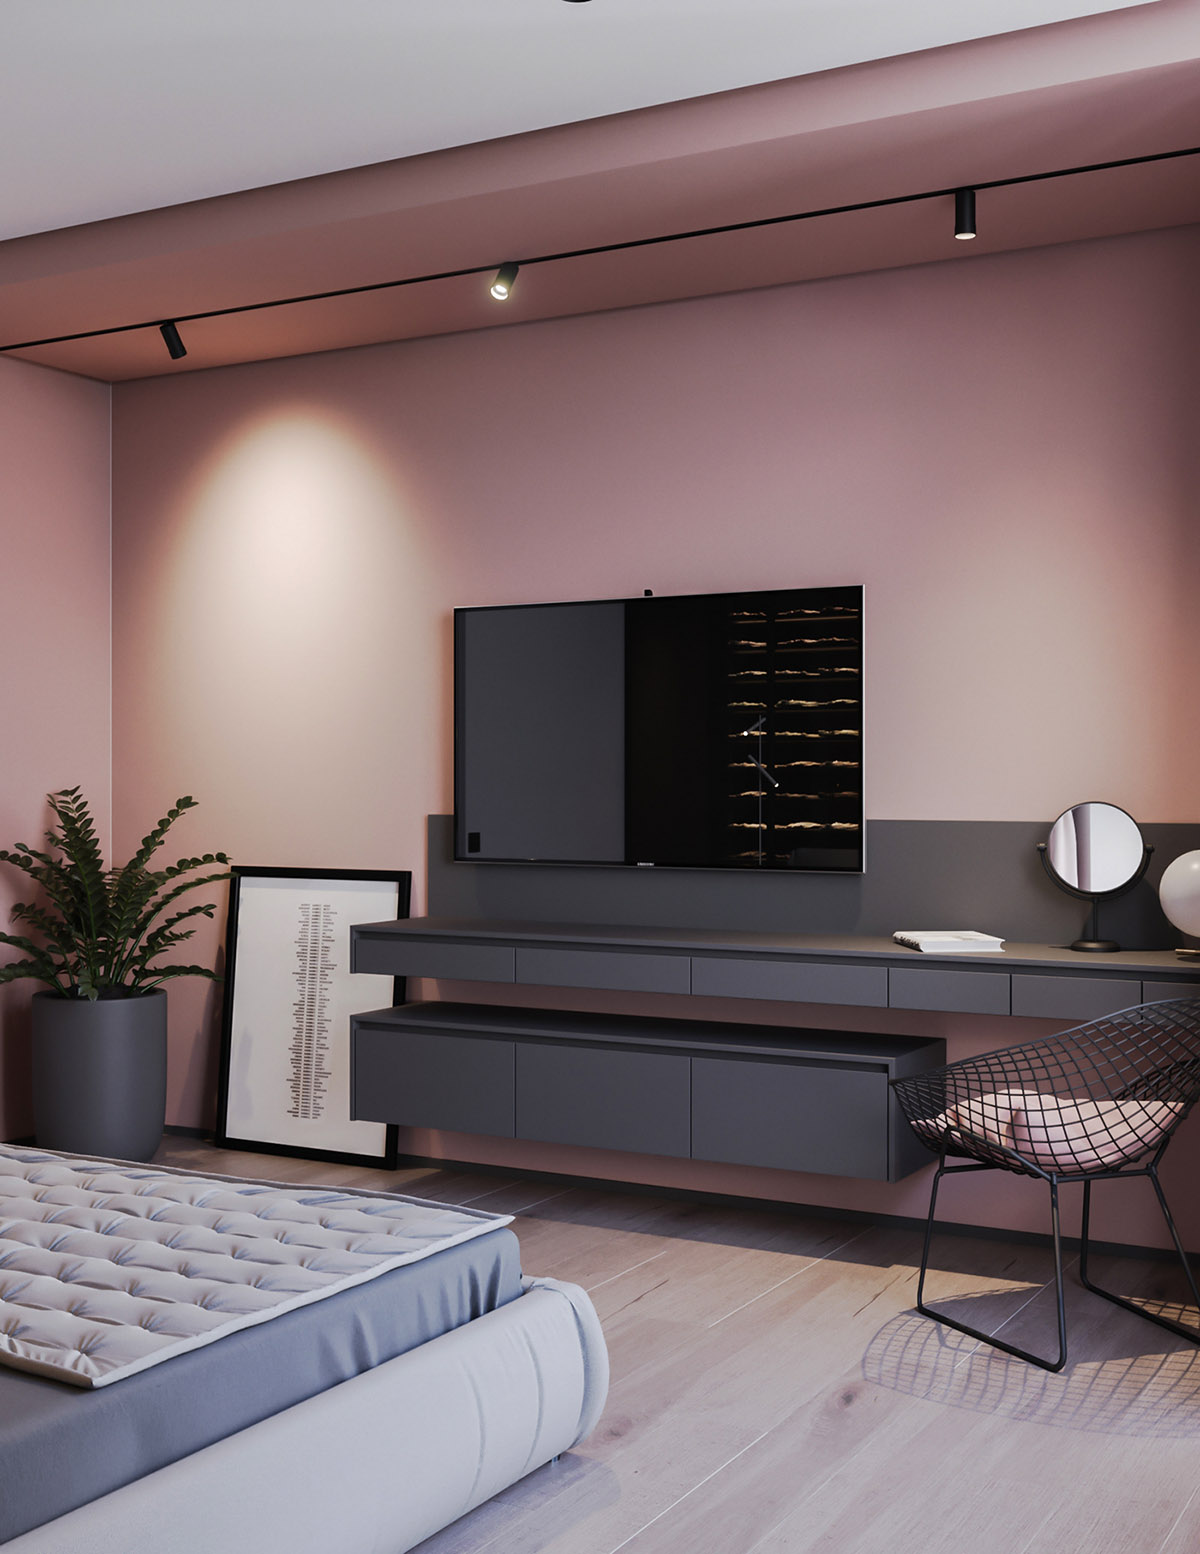 A Striking Example Of Interior Design Using Pink And Grey images 13